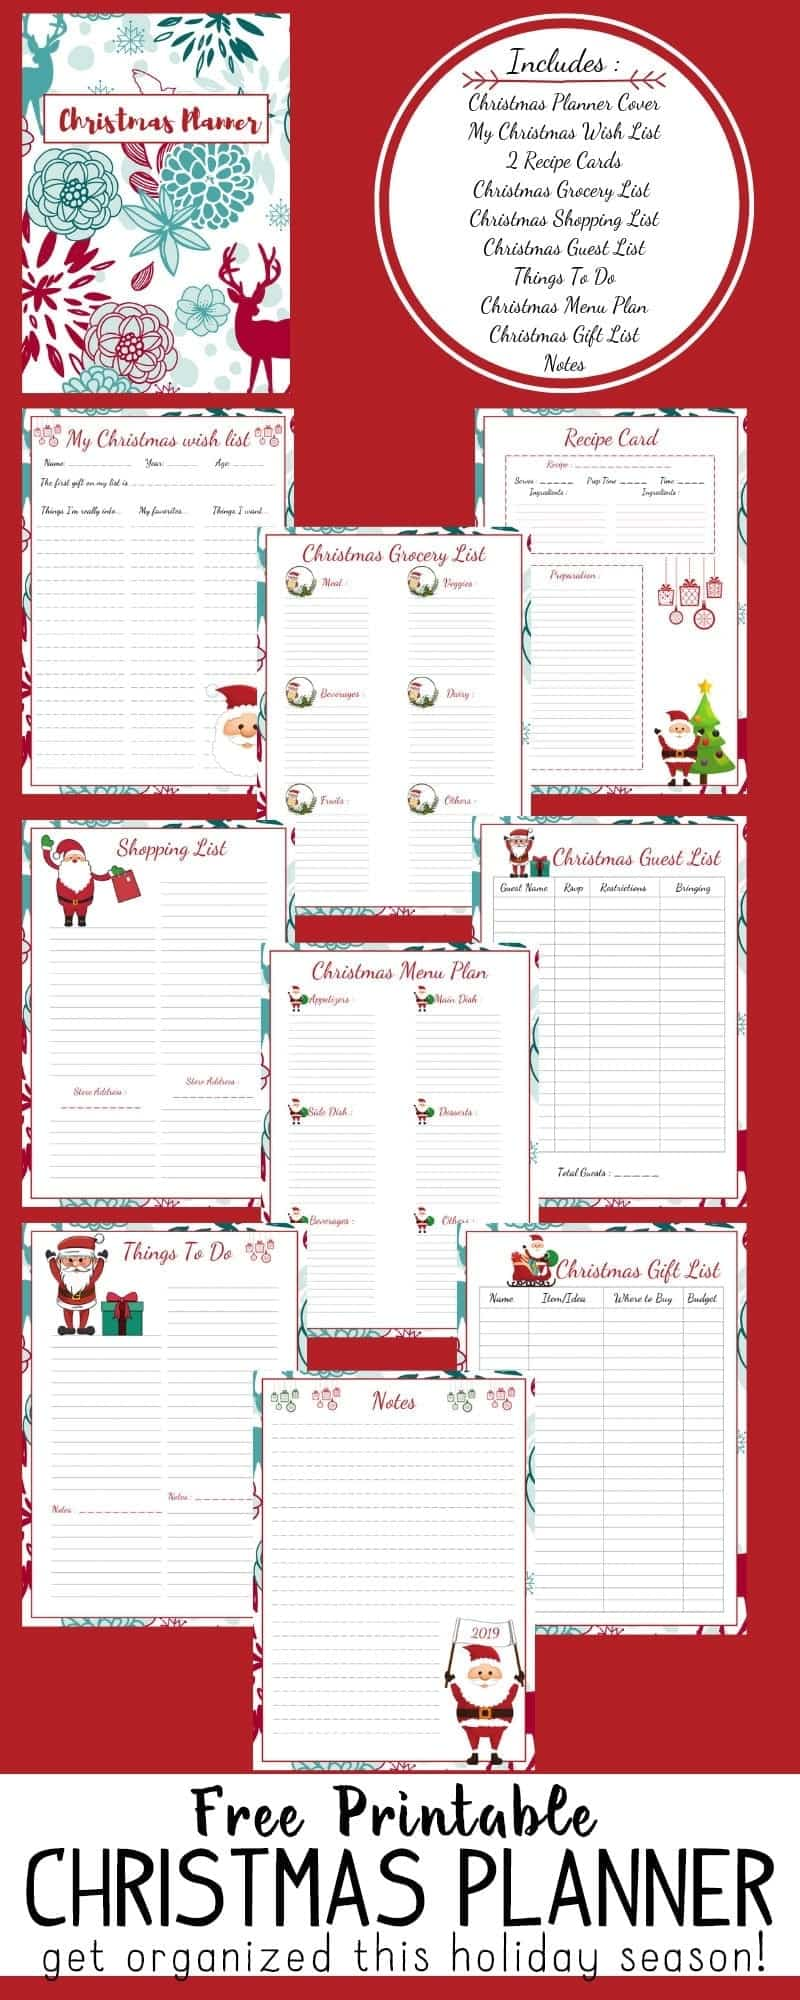 picture relating to Free Printable Christmas Planner named Take care of the Xmas Chaos With This Cost-free Xmas Planner